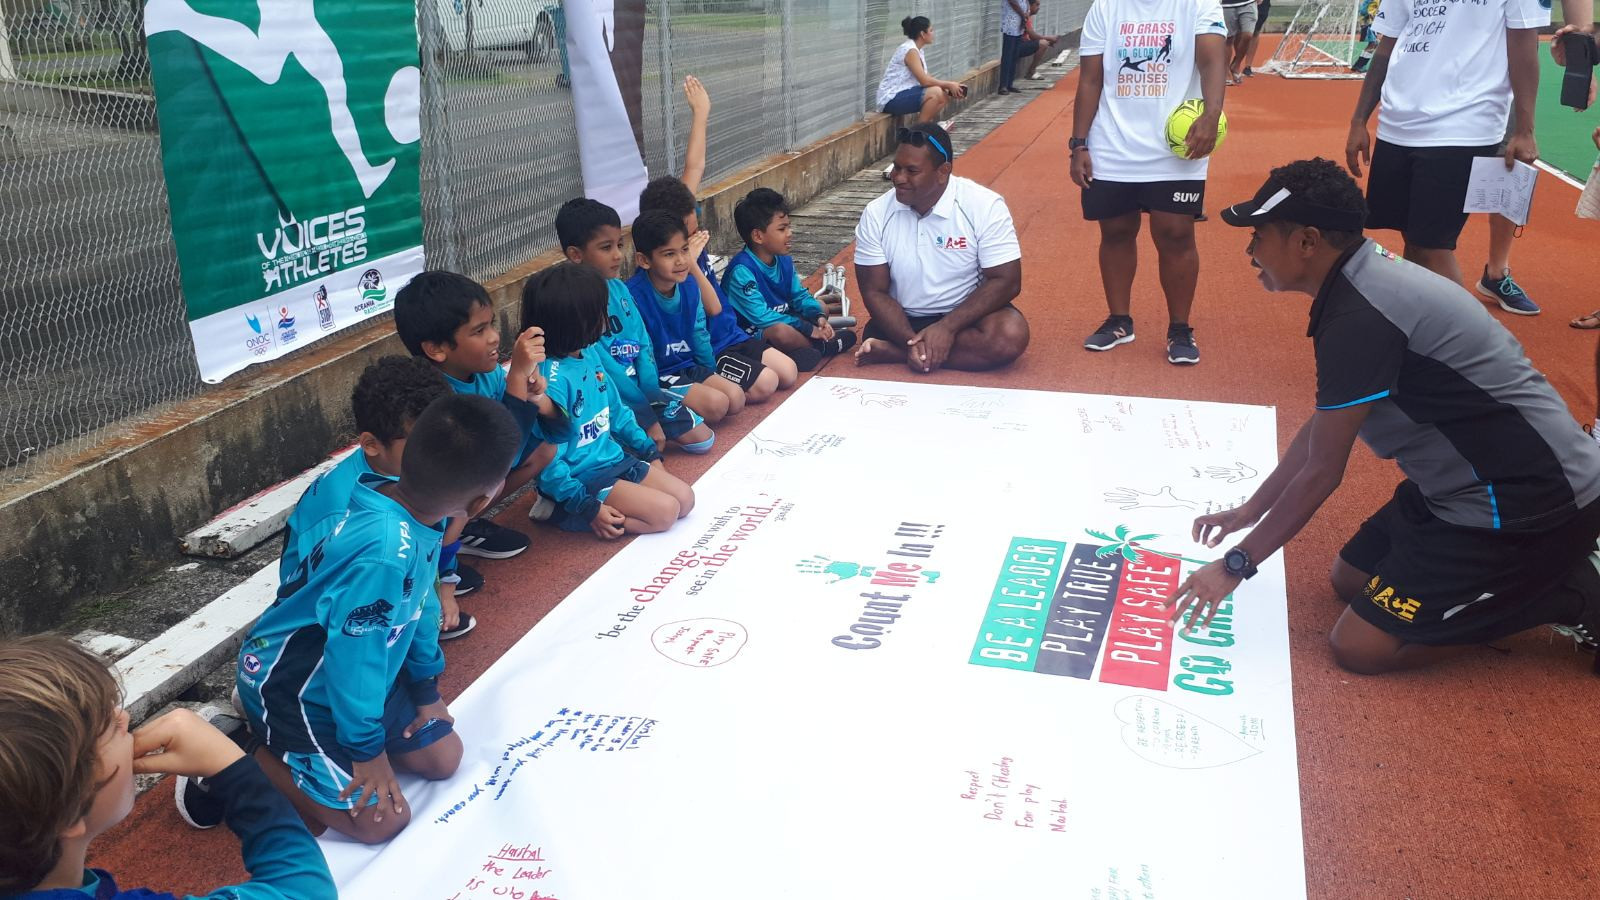 FASANOC VOA champions met with young footballers to teach them leadership and sportsmanship ©FASANOC